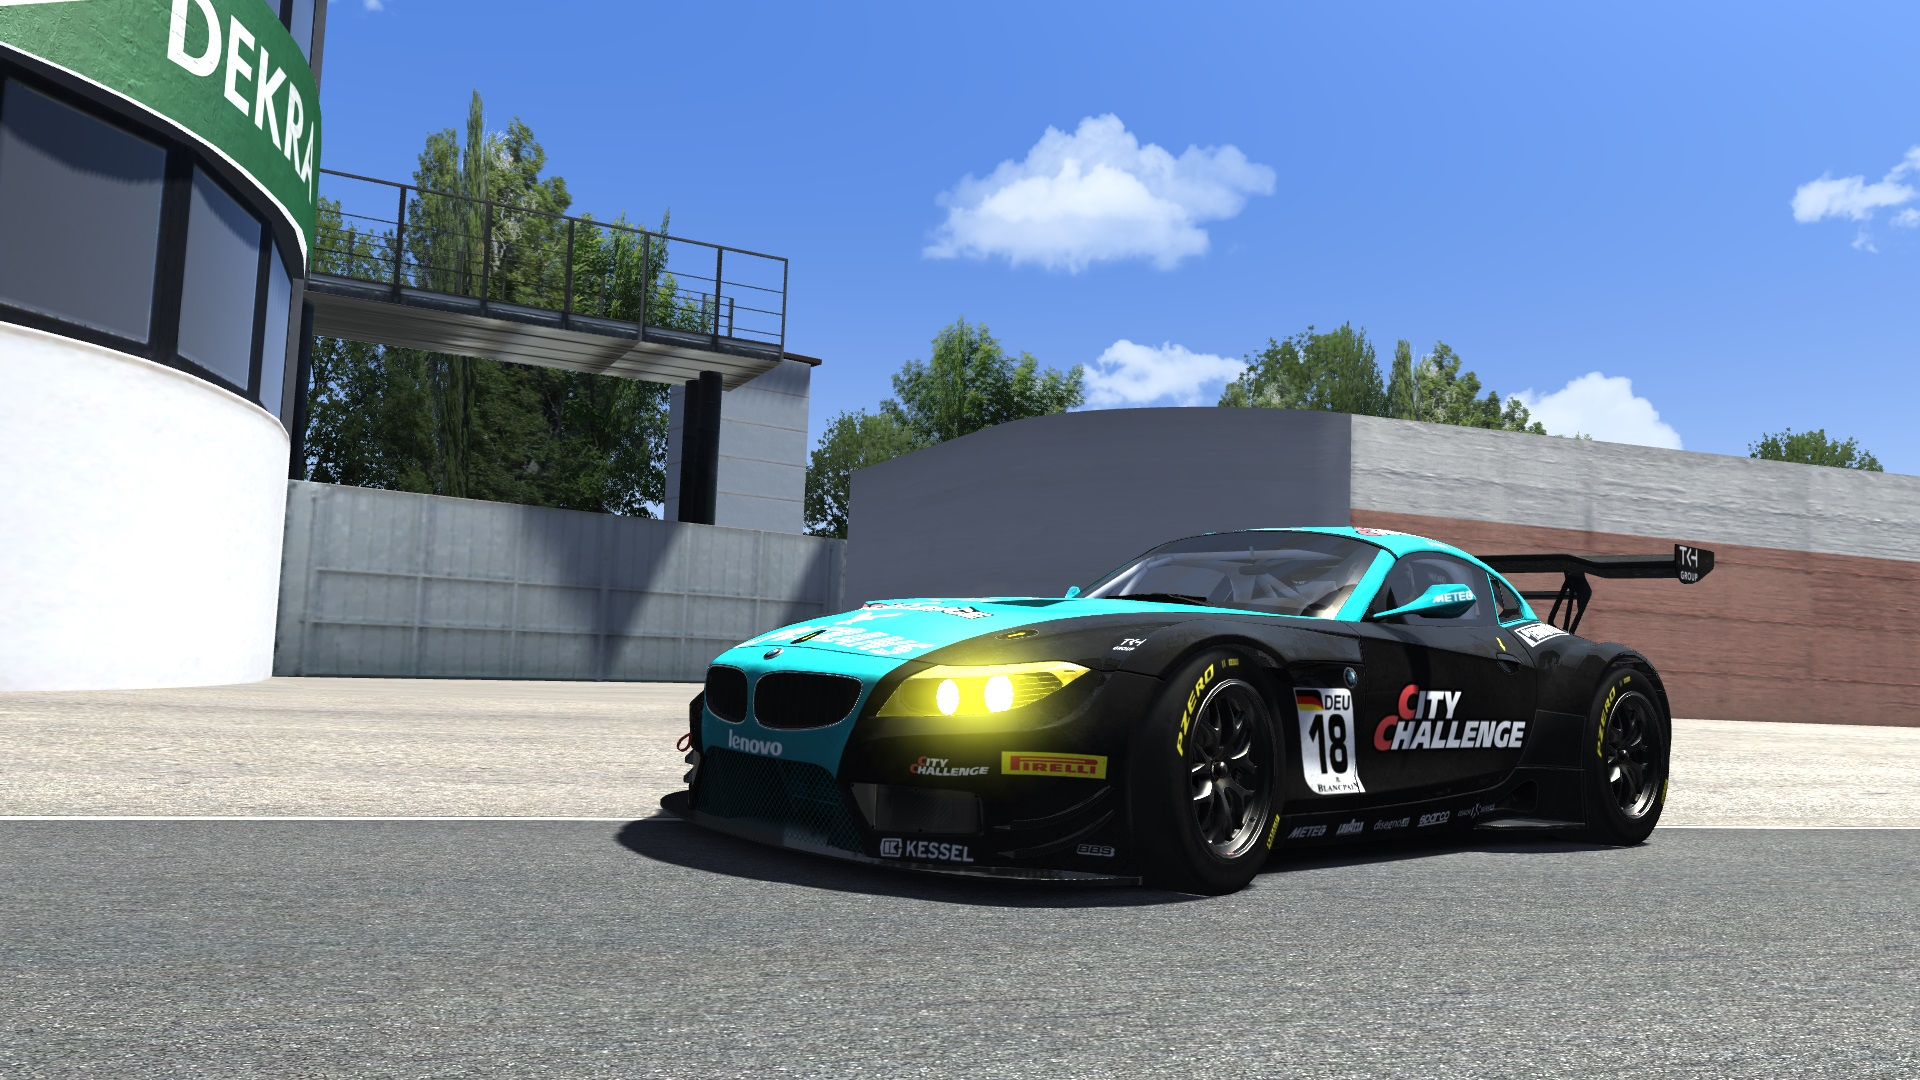 Screenshot_bmw_z4_gt3_imola_26-5-2014-17-49-14.jpg